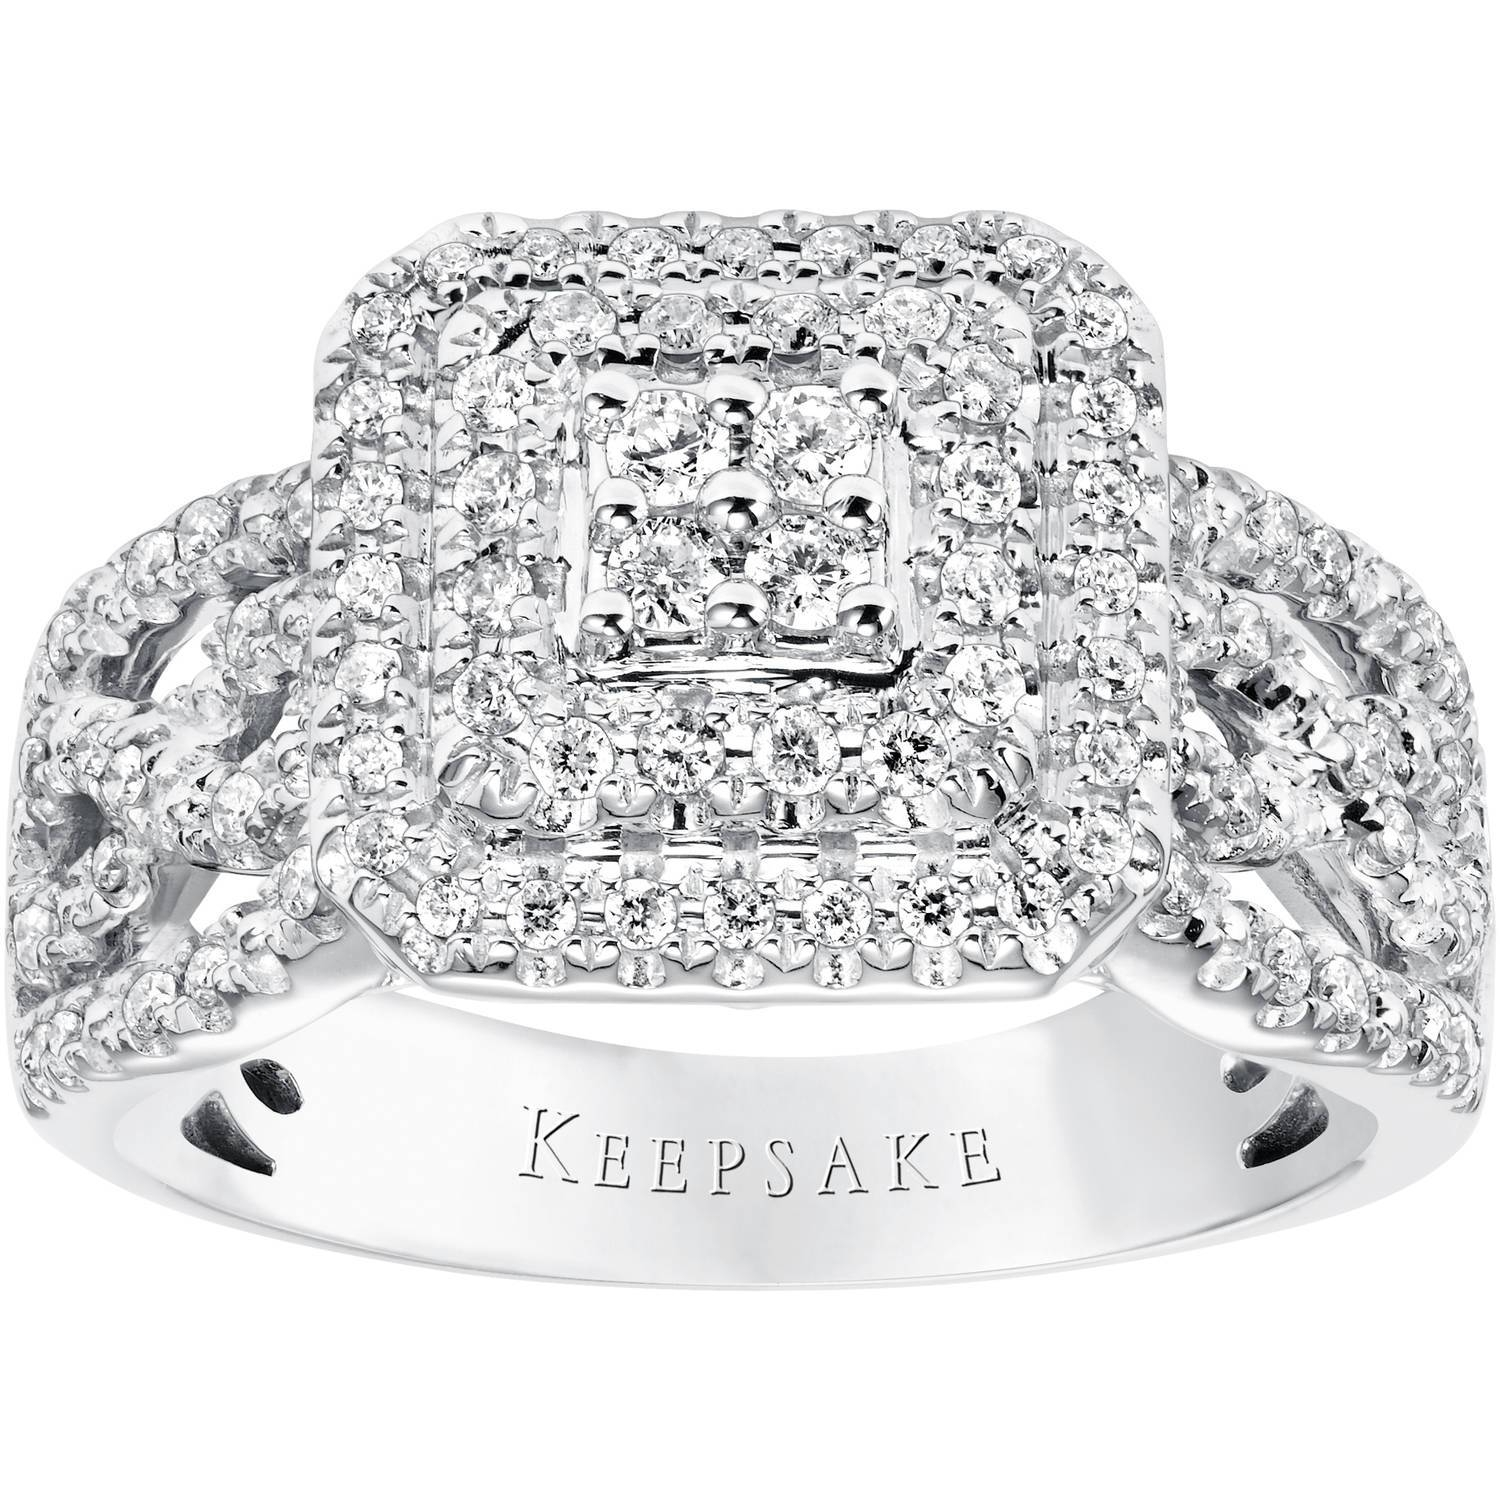 Walmart Keepsake Diamond Rings | Wedding, Promise, Diamond With Walmart Keepsake Engagement Rings (View 13 of 15)